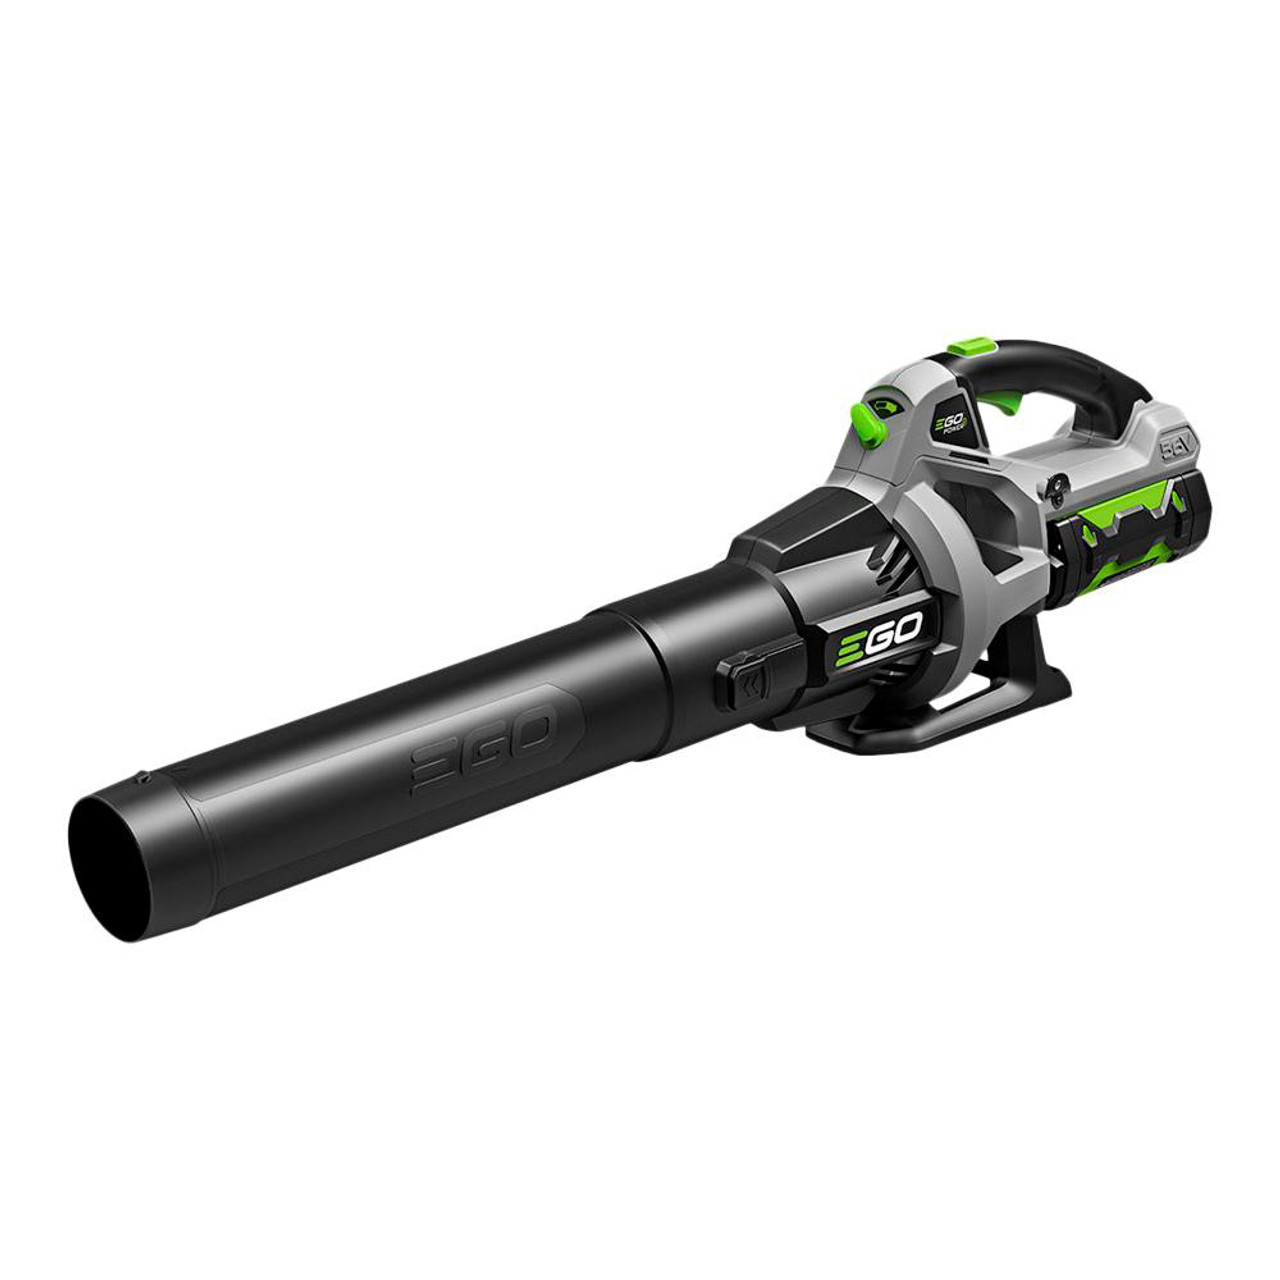 EGO LB5302 Electric, Cordless 56V 530 CFM Handheld Blower w/ 2.5Ah Battery & 210W Charger Image